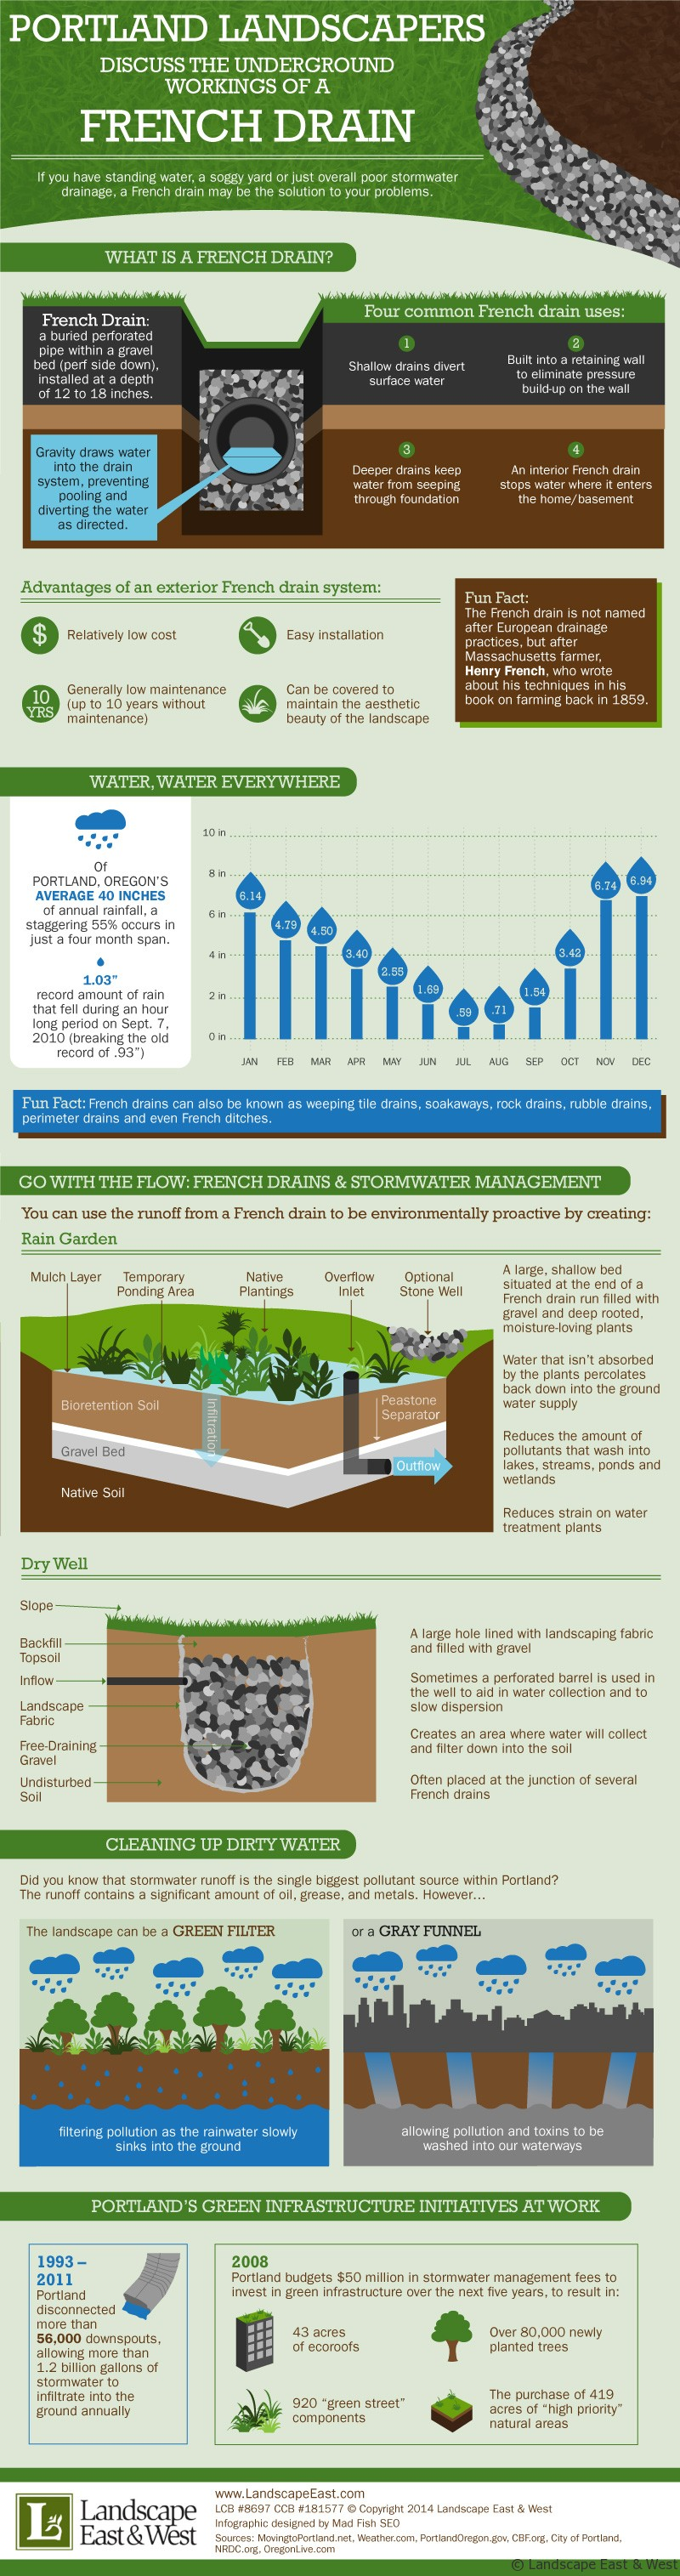 Portland Landscapers Discuss the Underground Workings of a French Drain #infographic